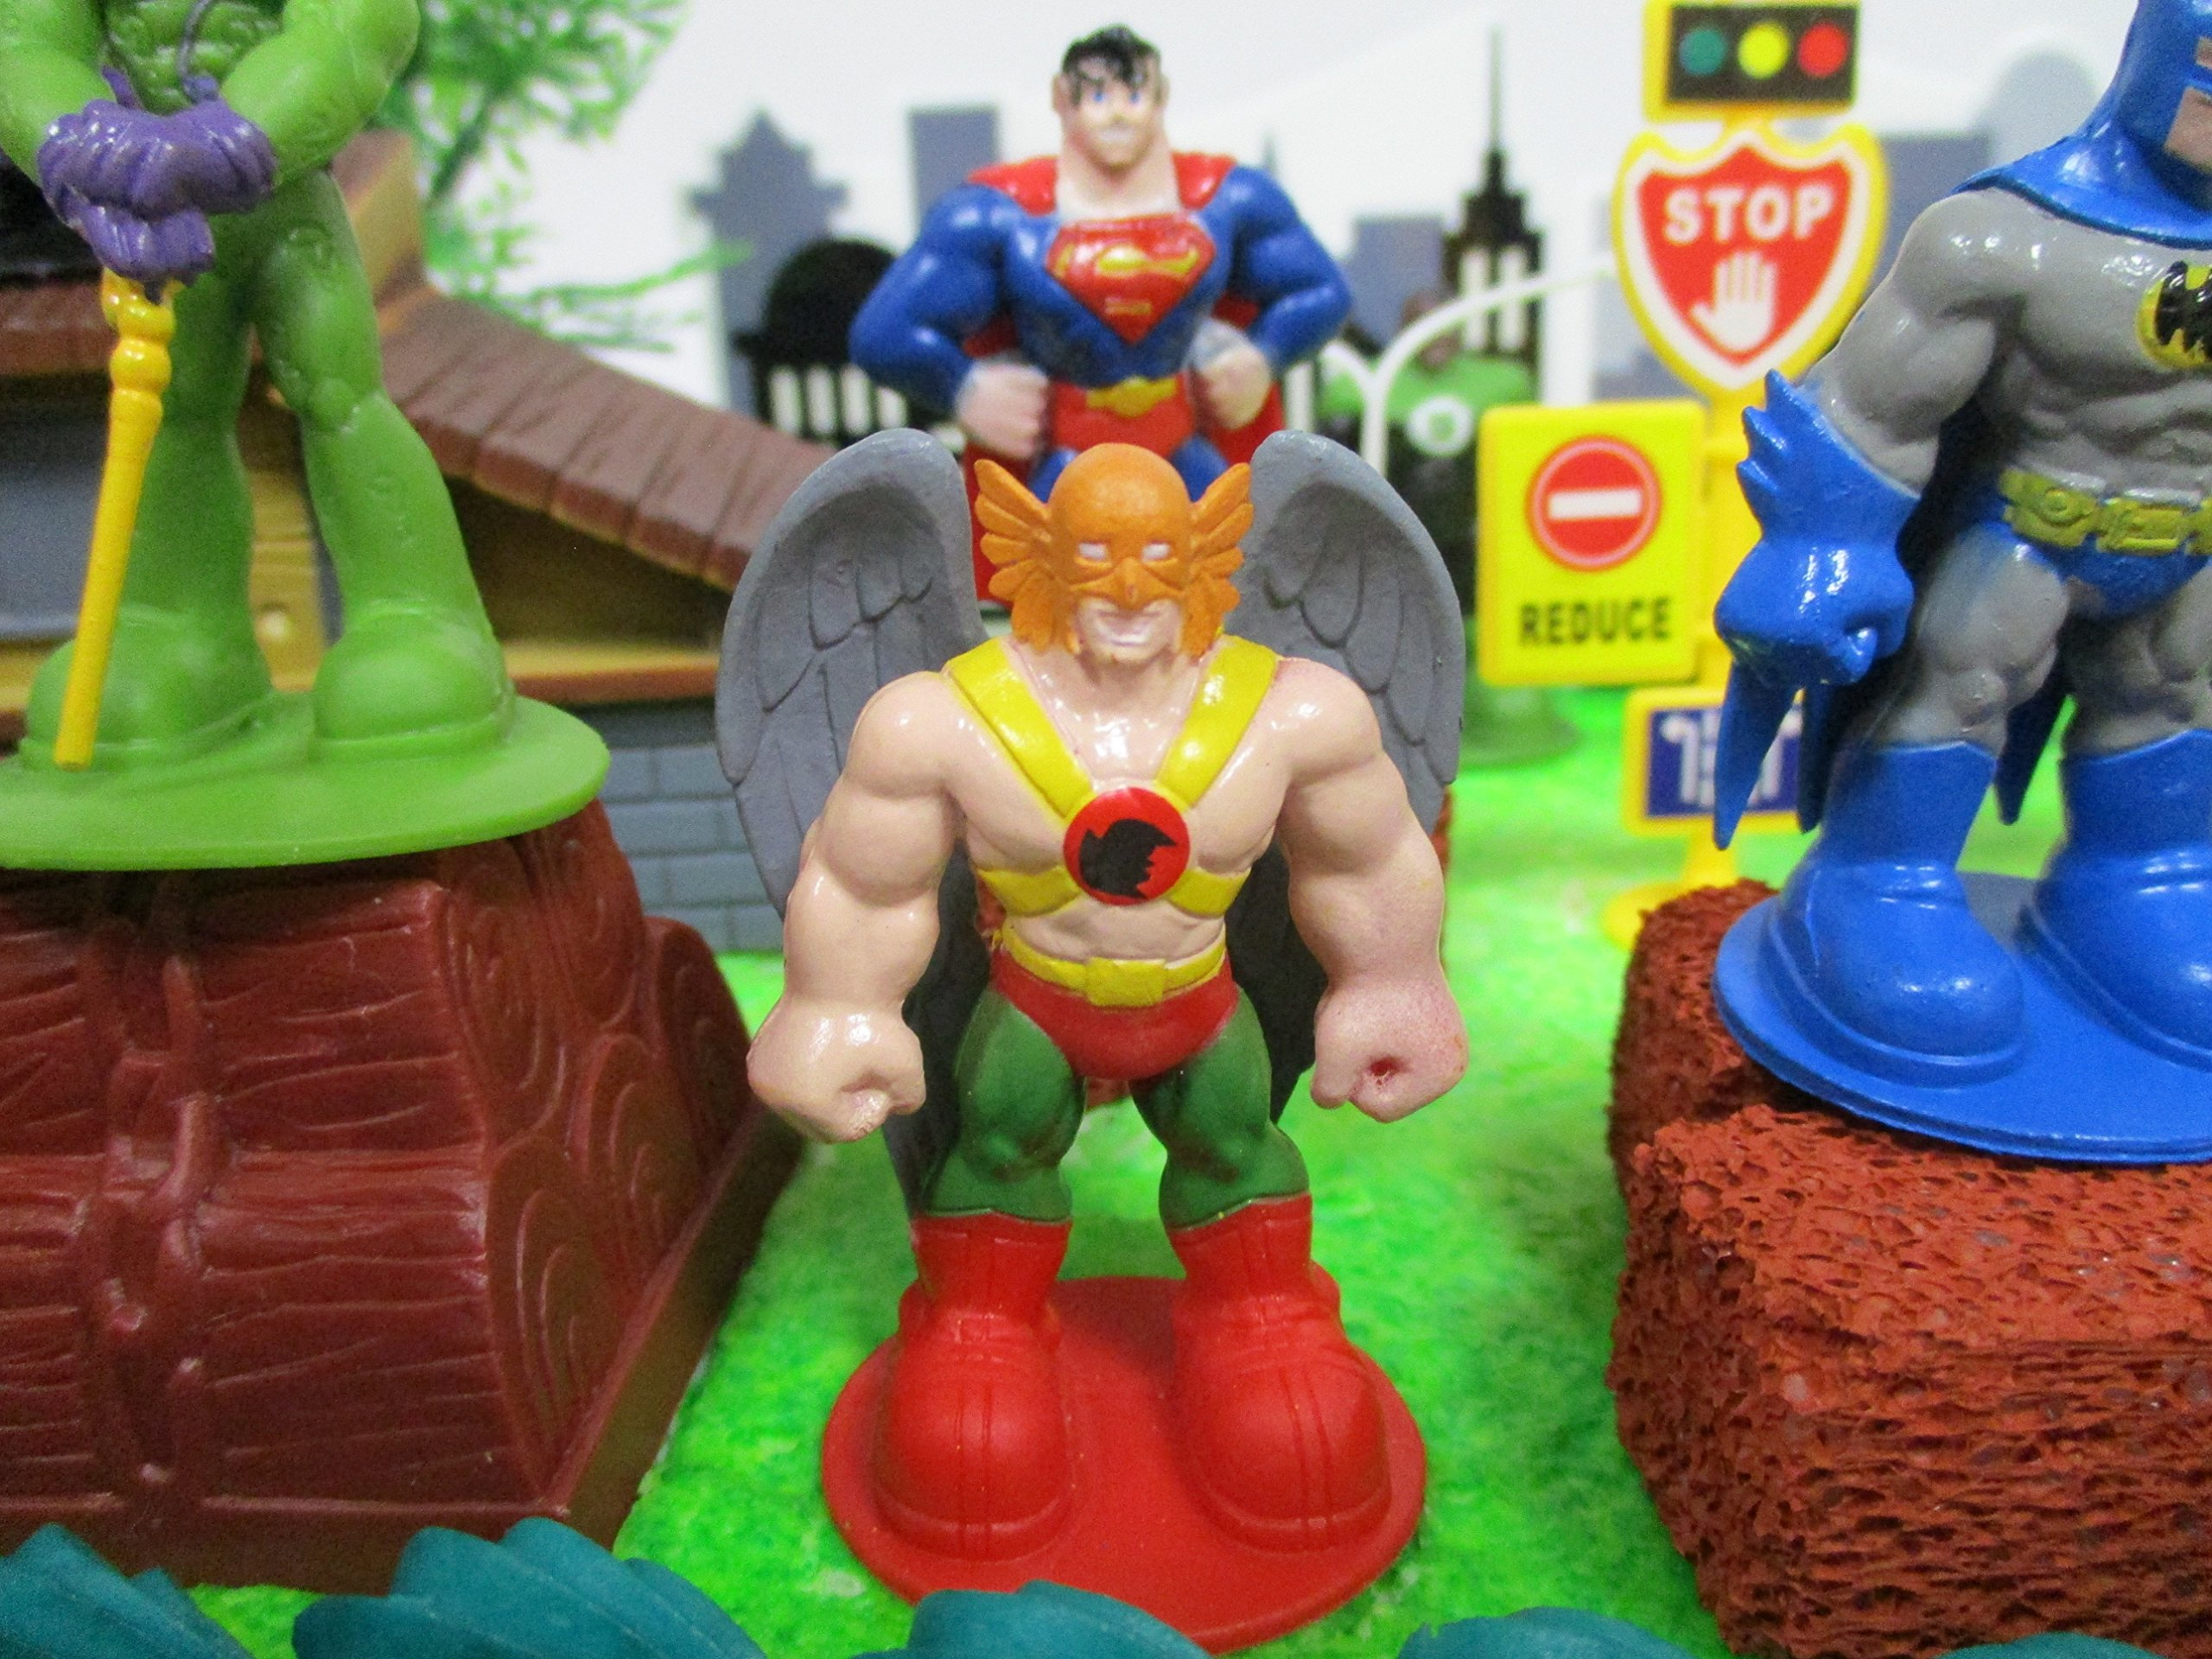 DC Comic Super Friends Birthday Cake Topper Set Featuring Super Hero Crime Fighters and Villains with Decorative Accessories by Kitoo (Image #4)